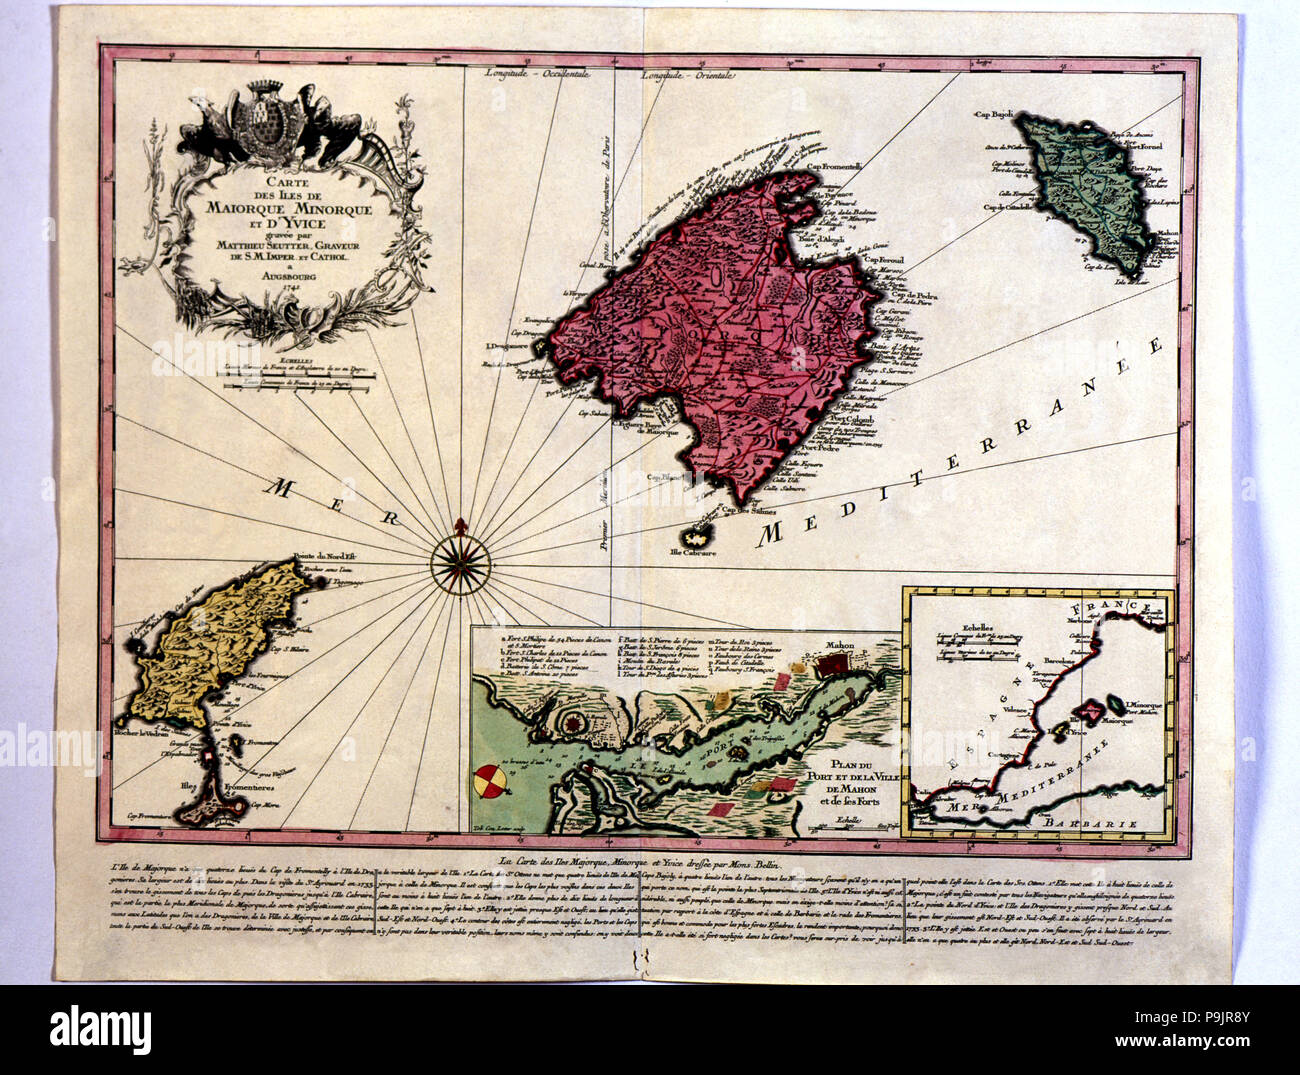 Map of the Majorca, Menorca and Ibiza islands, in hand engraving and colored, with a box showing … Stock Photo